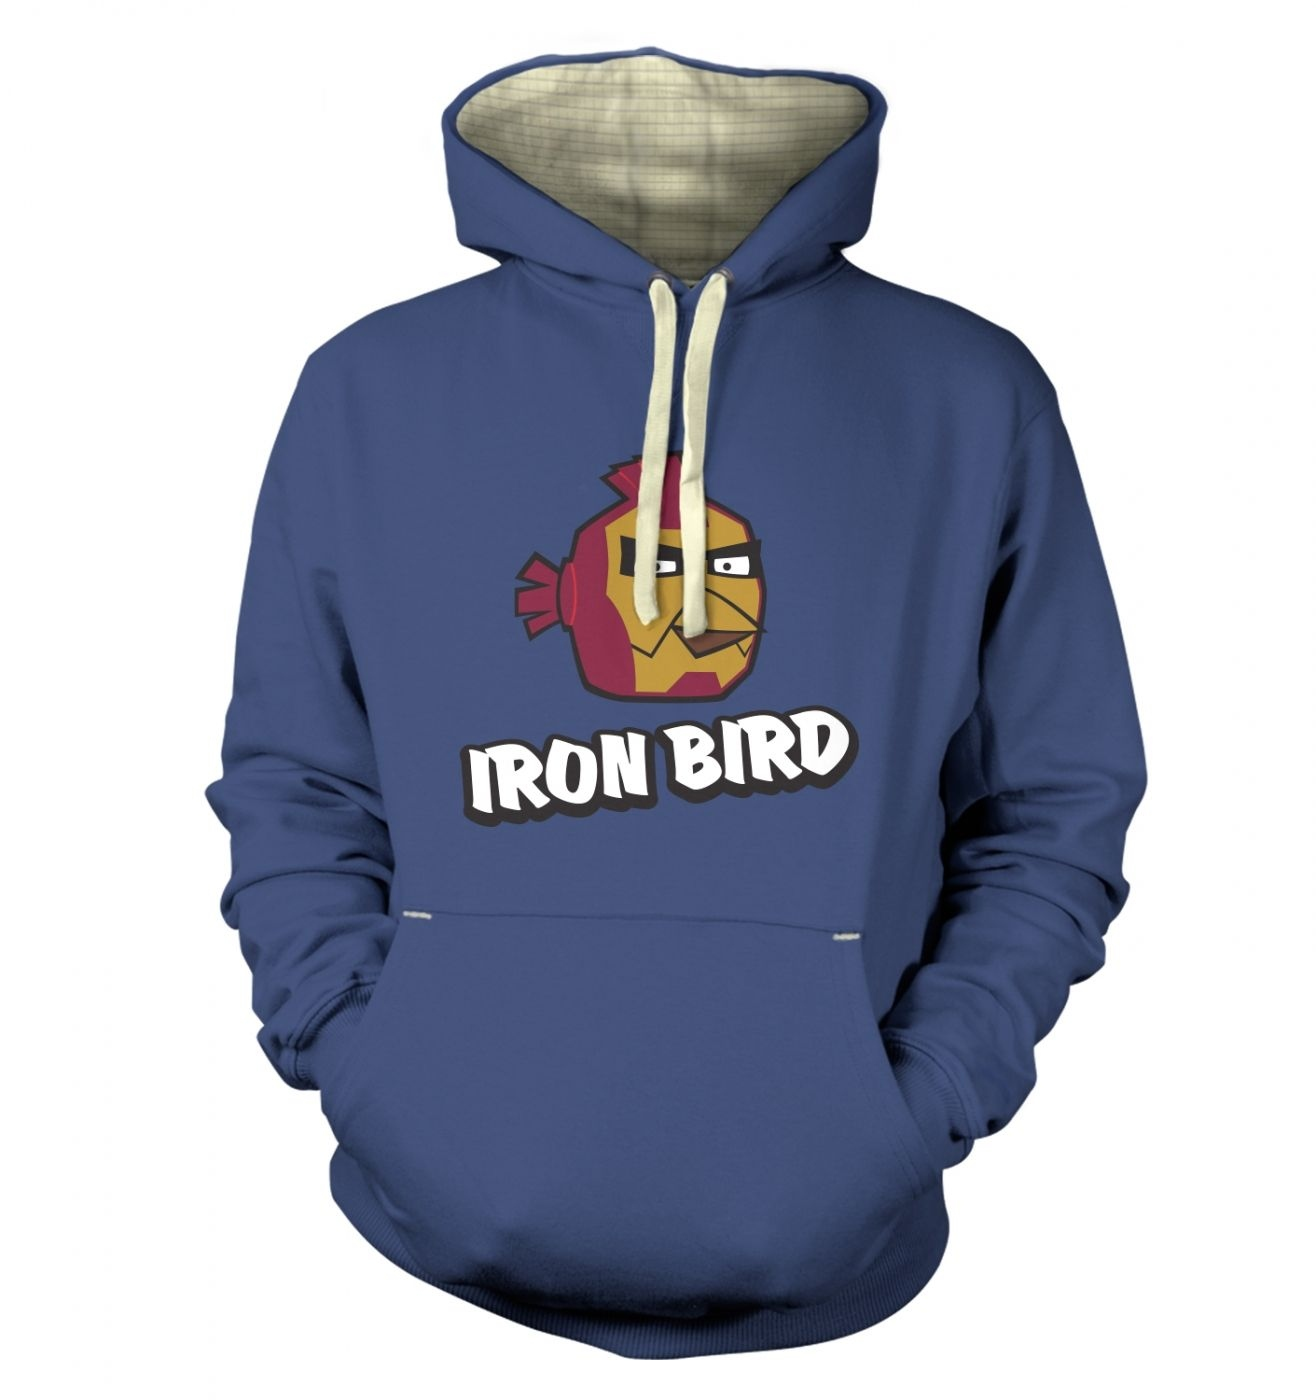 Iron Bird Premium Hoodie Inspired By Avengers, Angry Birds And Iron Man